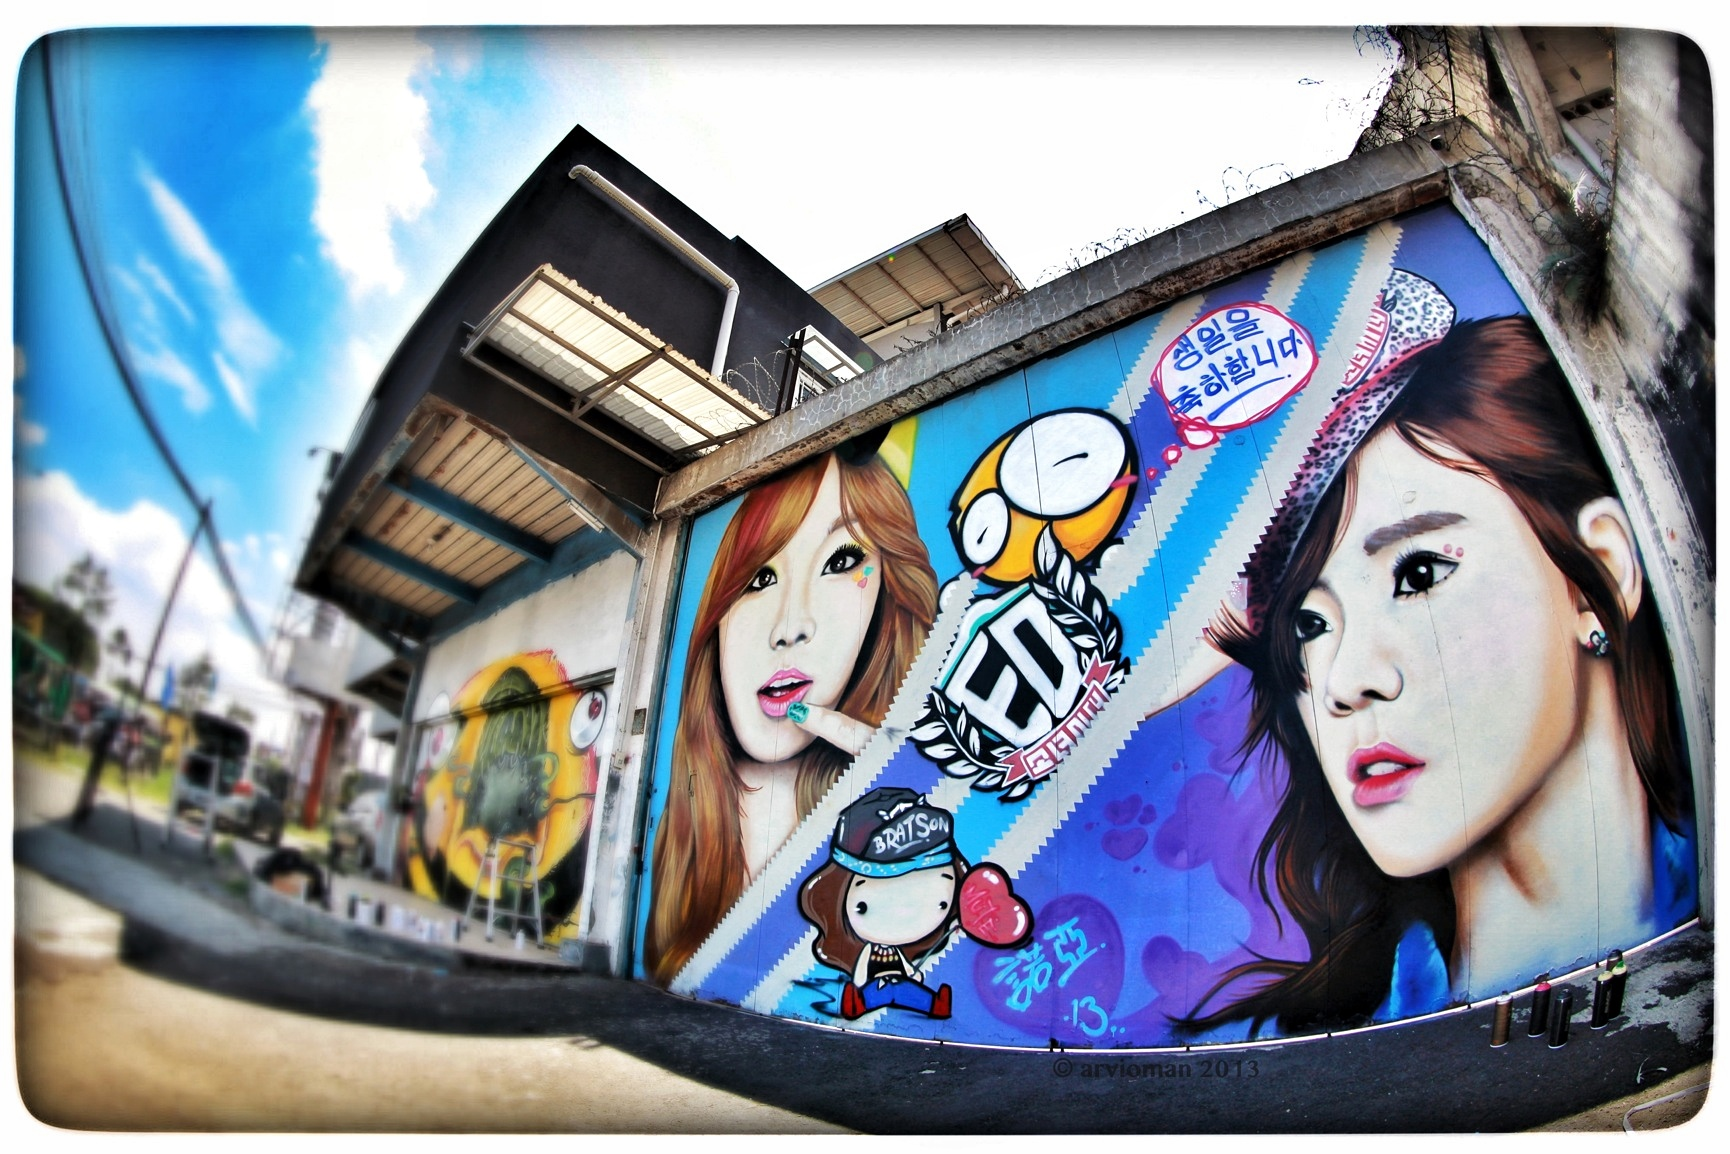 Indonesian Fan Creates a Giant Street Art Display for Taeyeon's Birthday